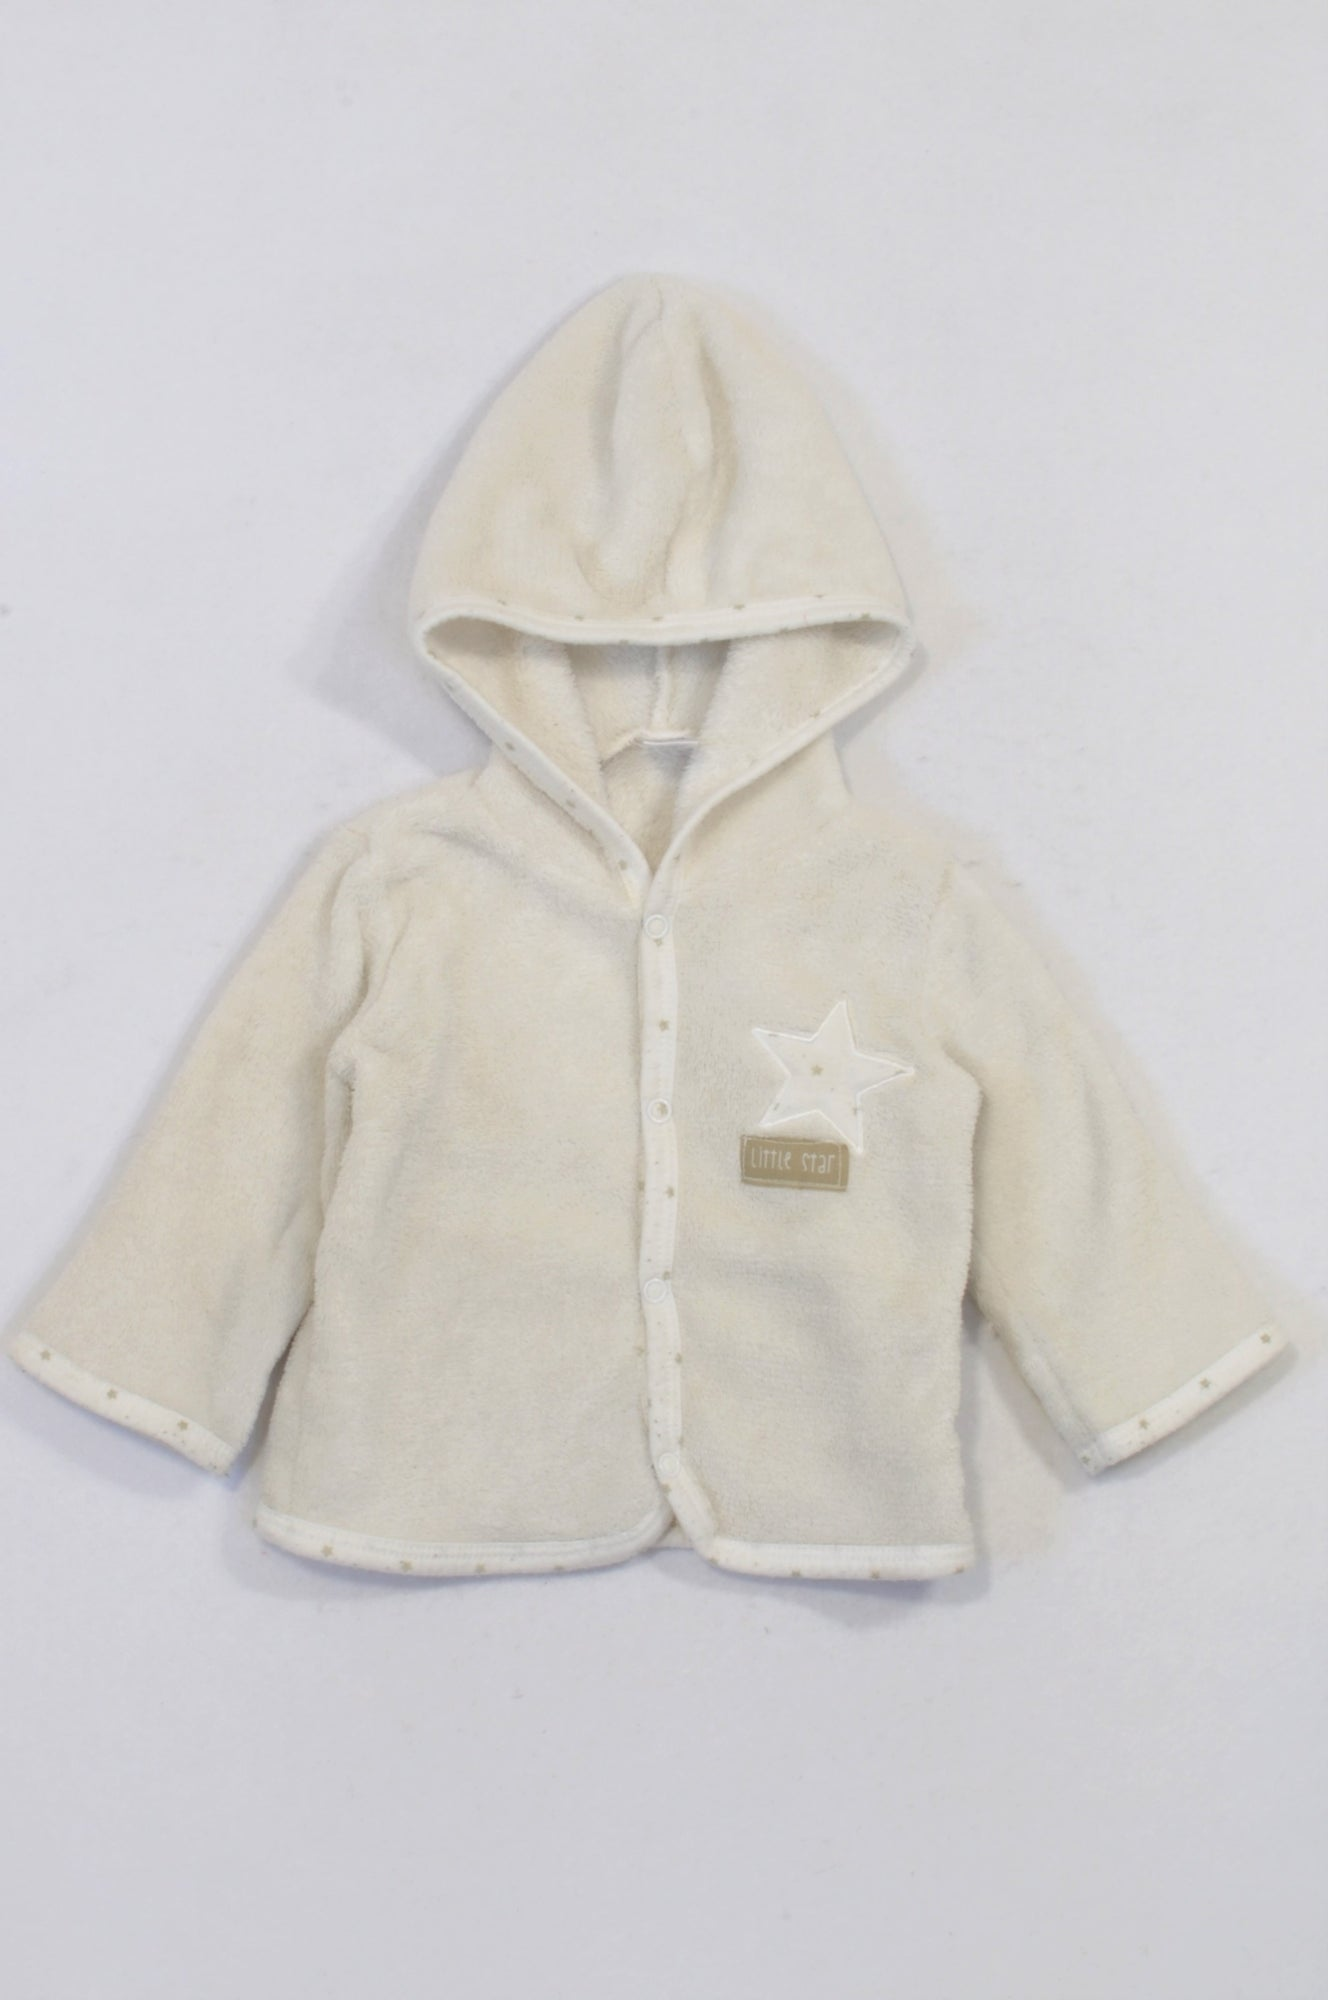 Ackermans Ivory Little Star Coral Fleece Jacket Unisex 3-6 months